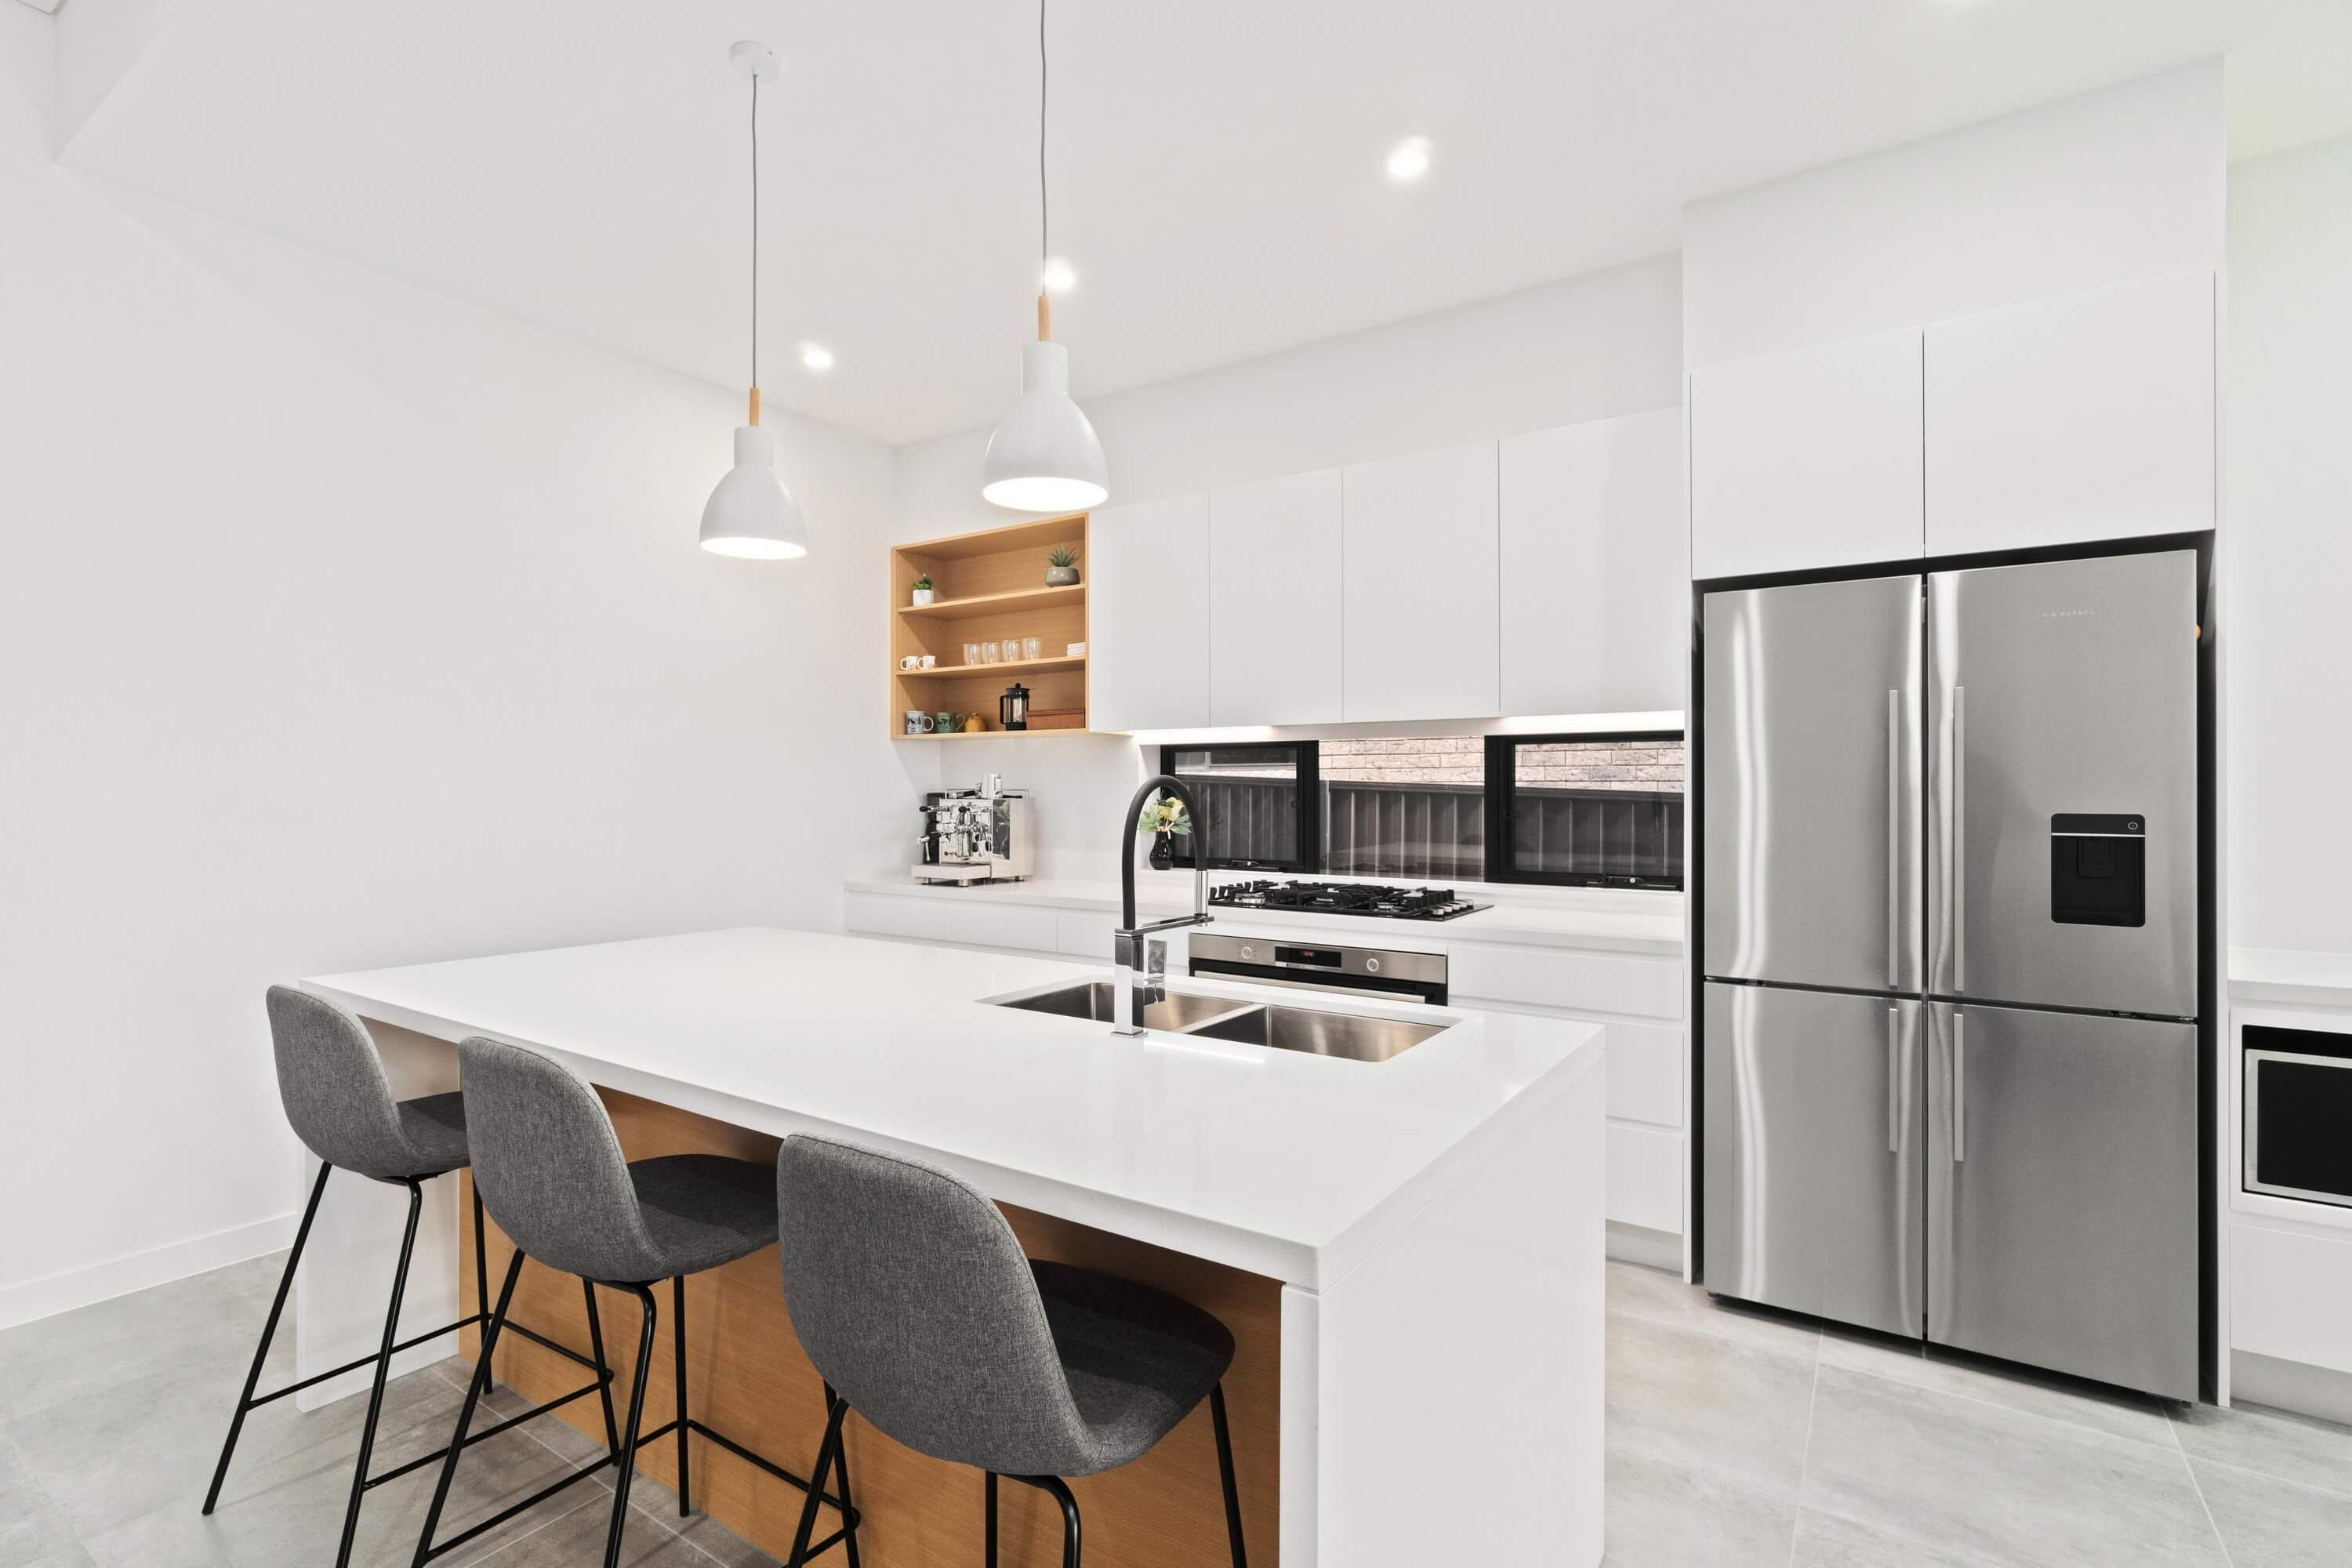 Kitchen Designs Sydney Experts Have The Skill And Creativity To